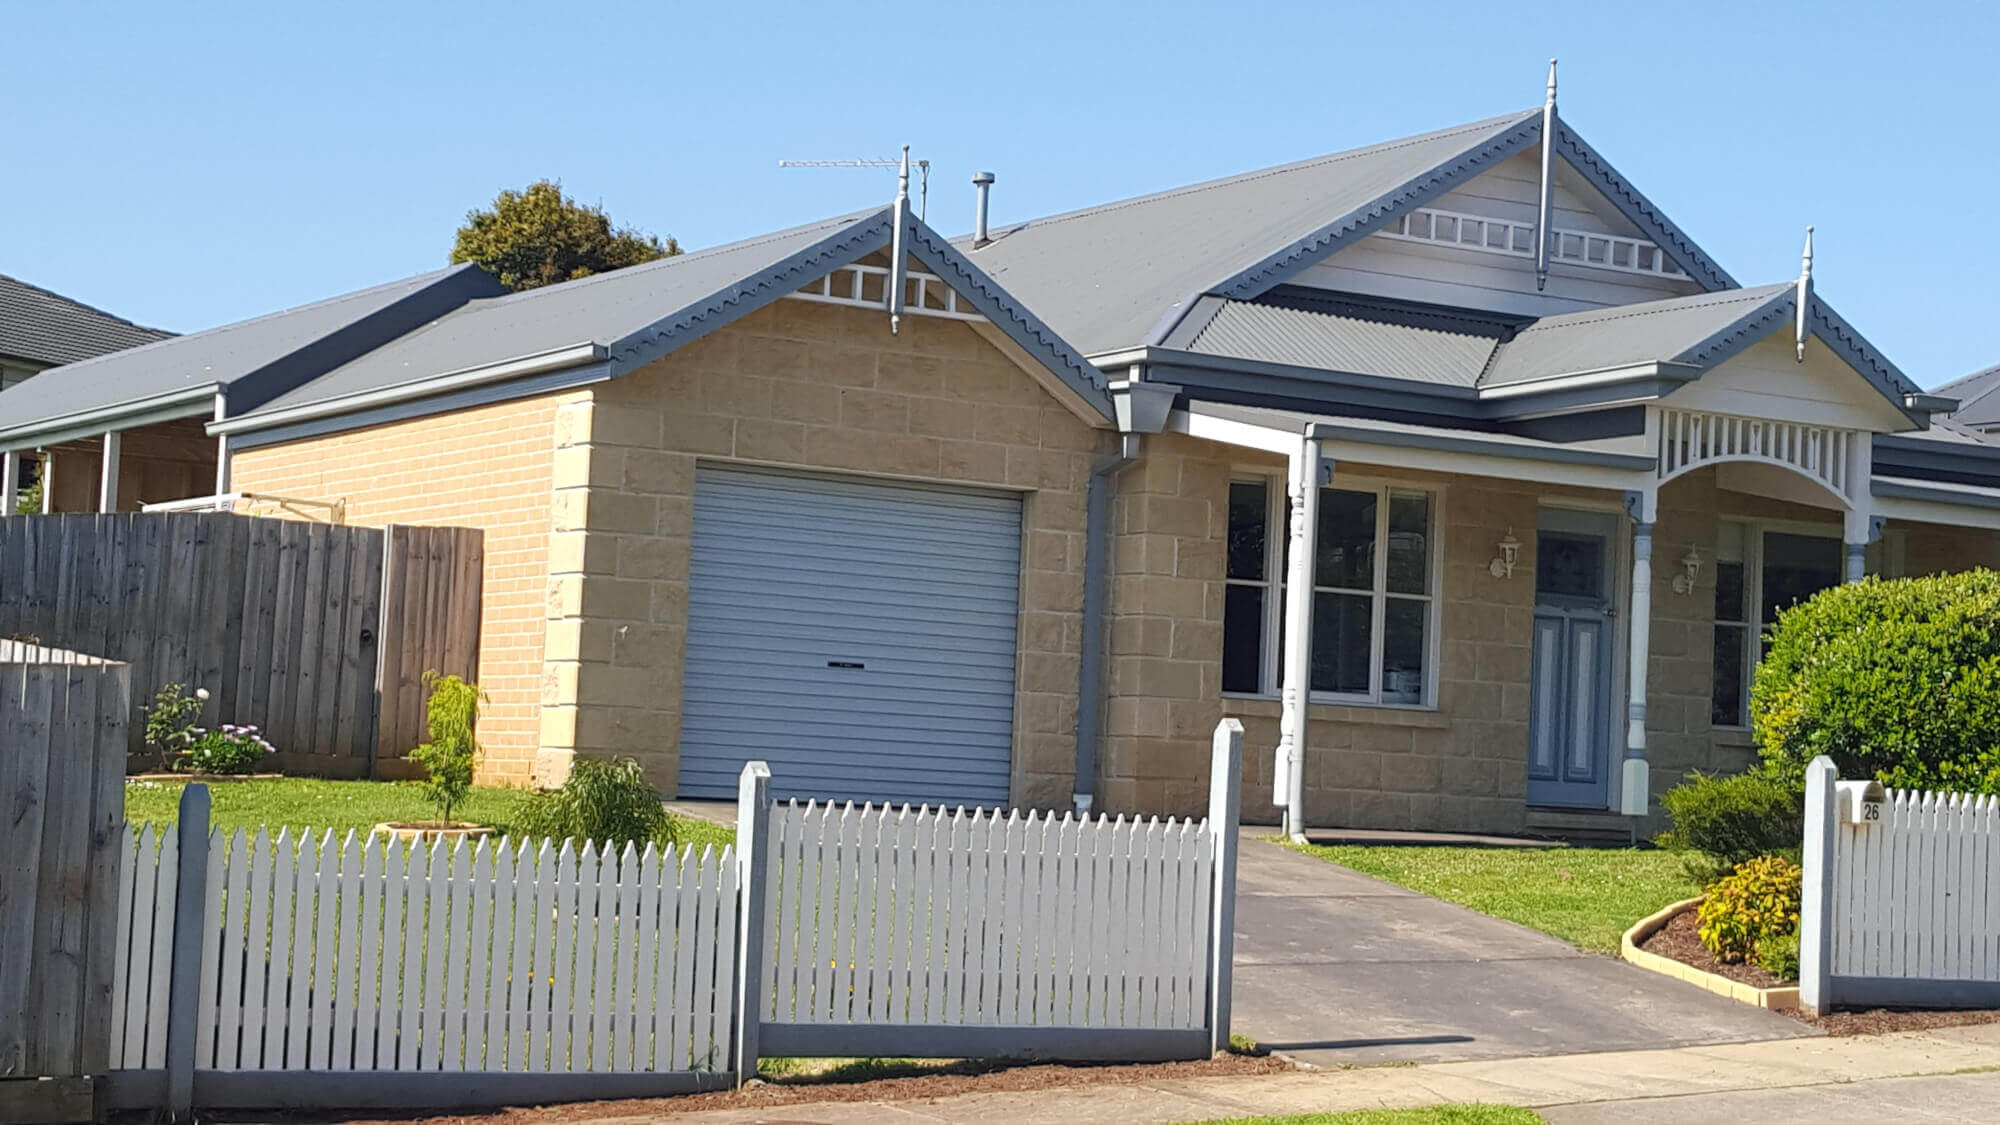 Property for sale 26 Shae Crescent Drouin VIC 3818